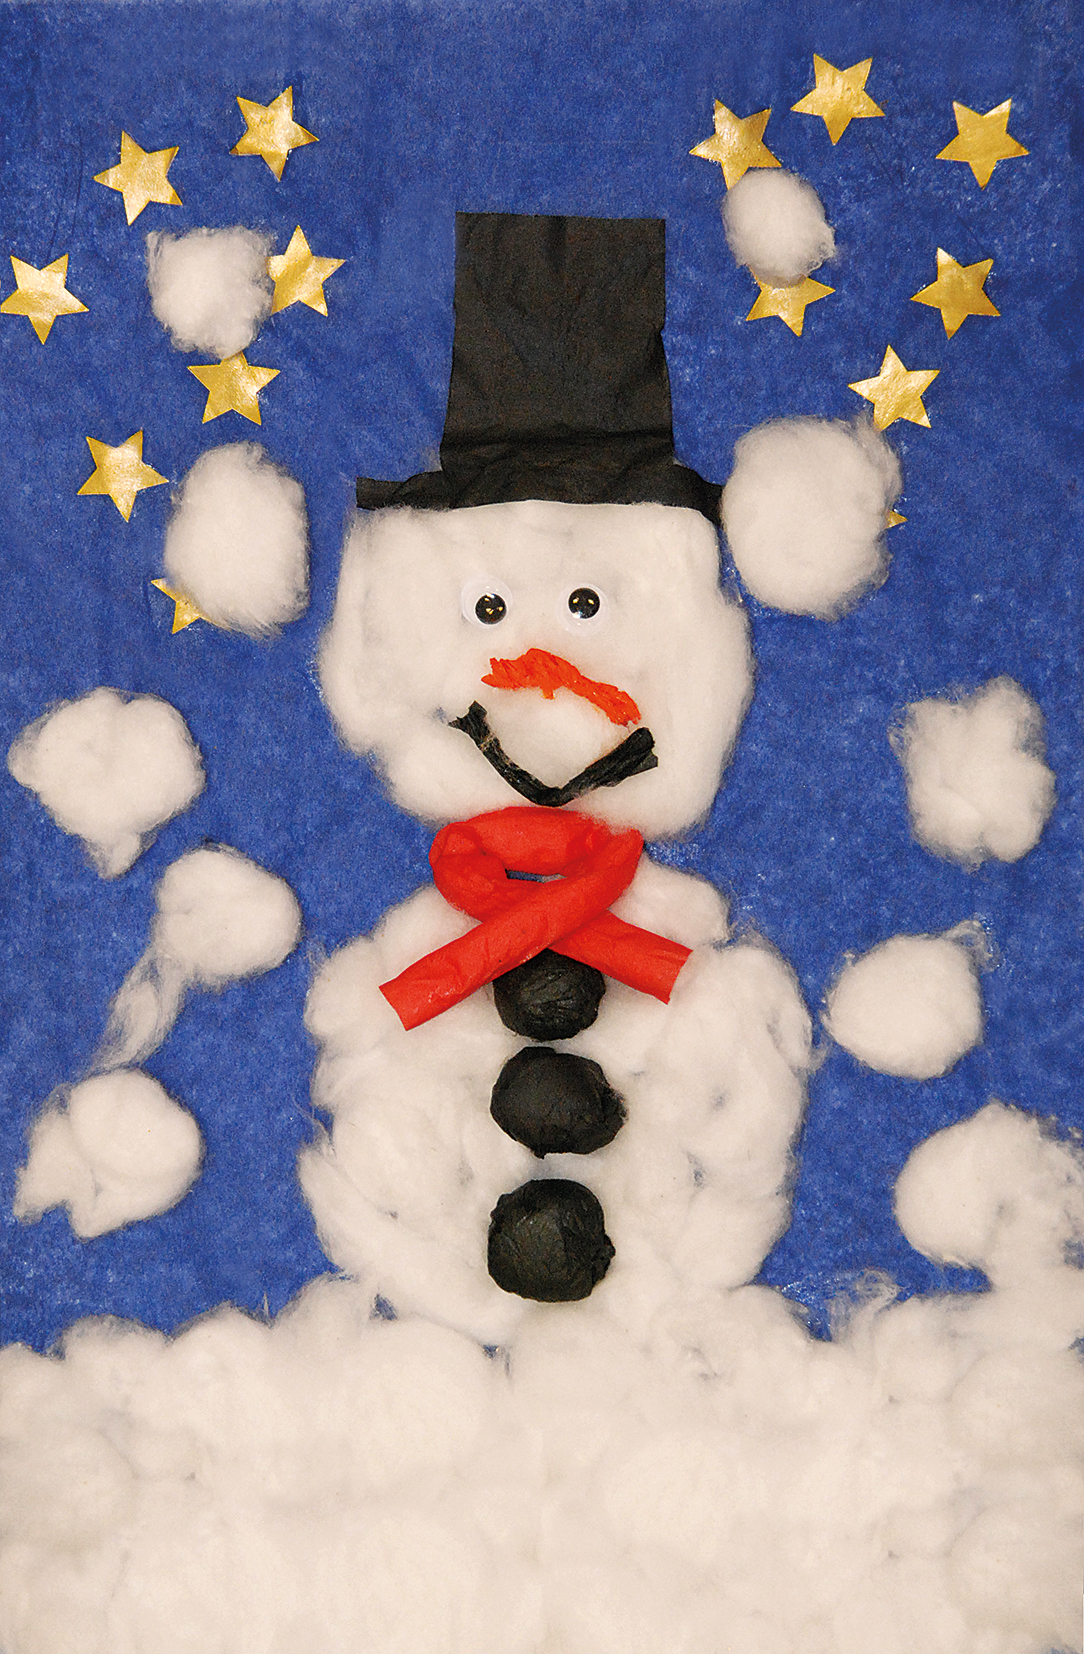 Blue background with gold start and cotton wool snow and snowman with bright red scarf